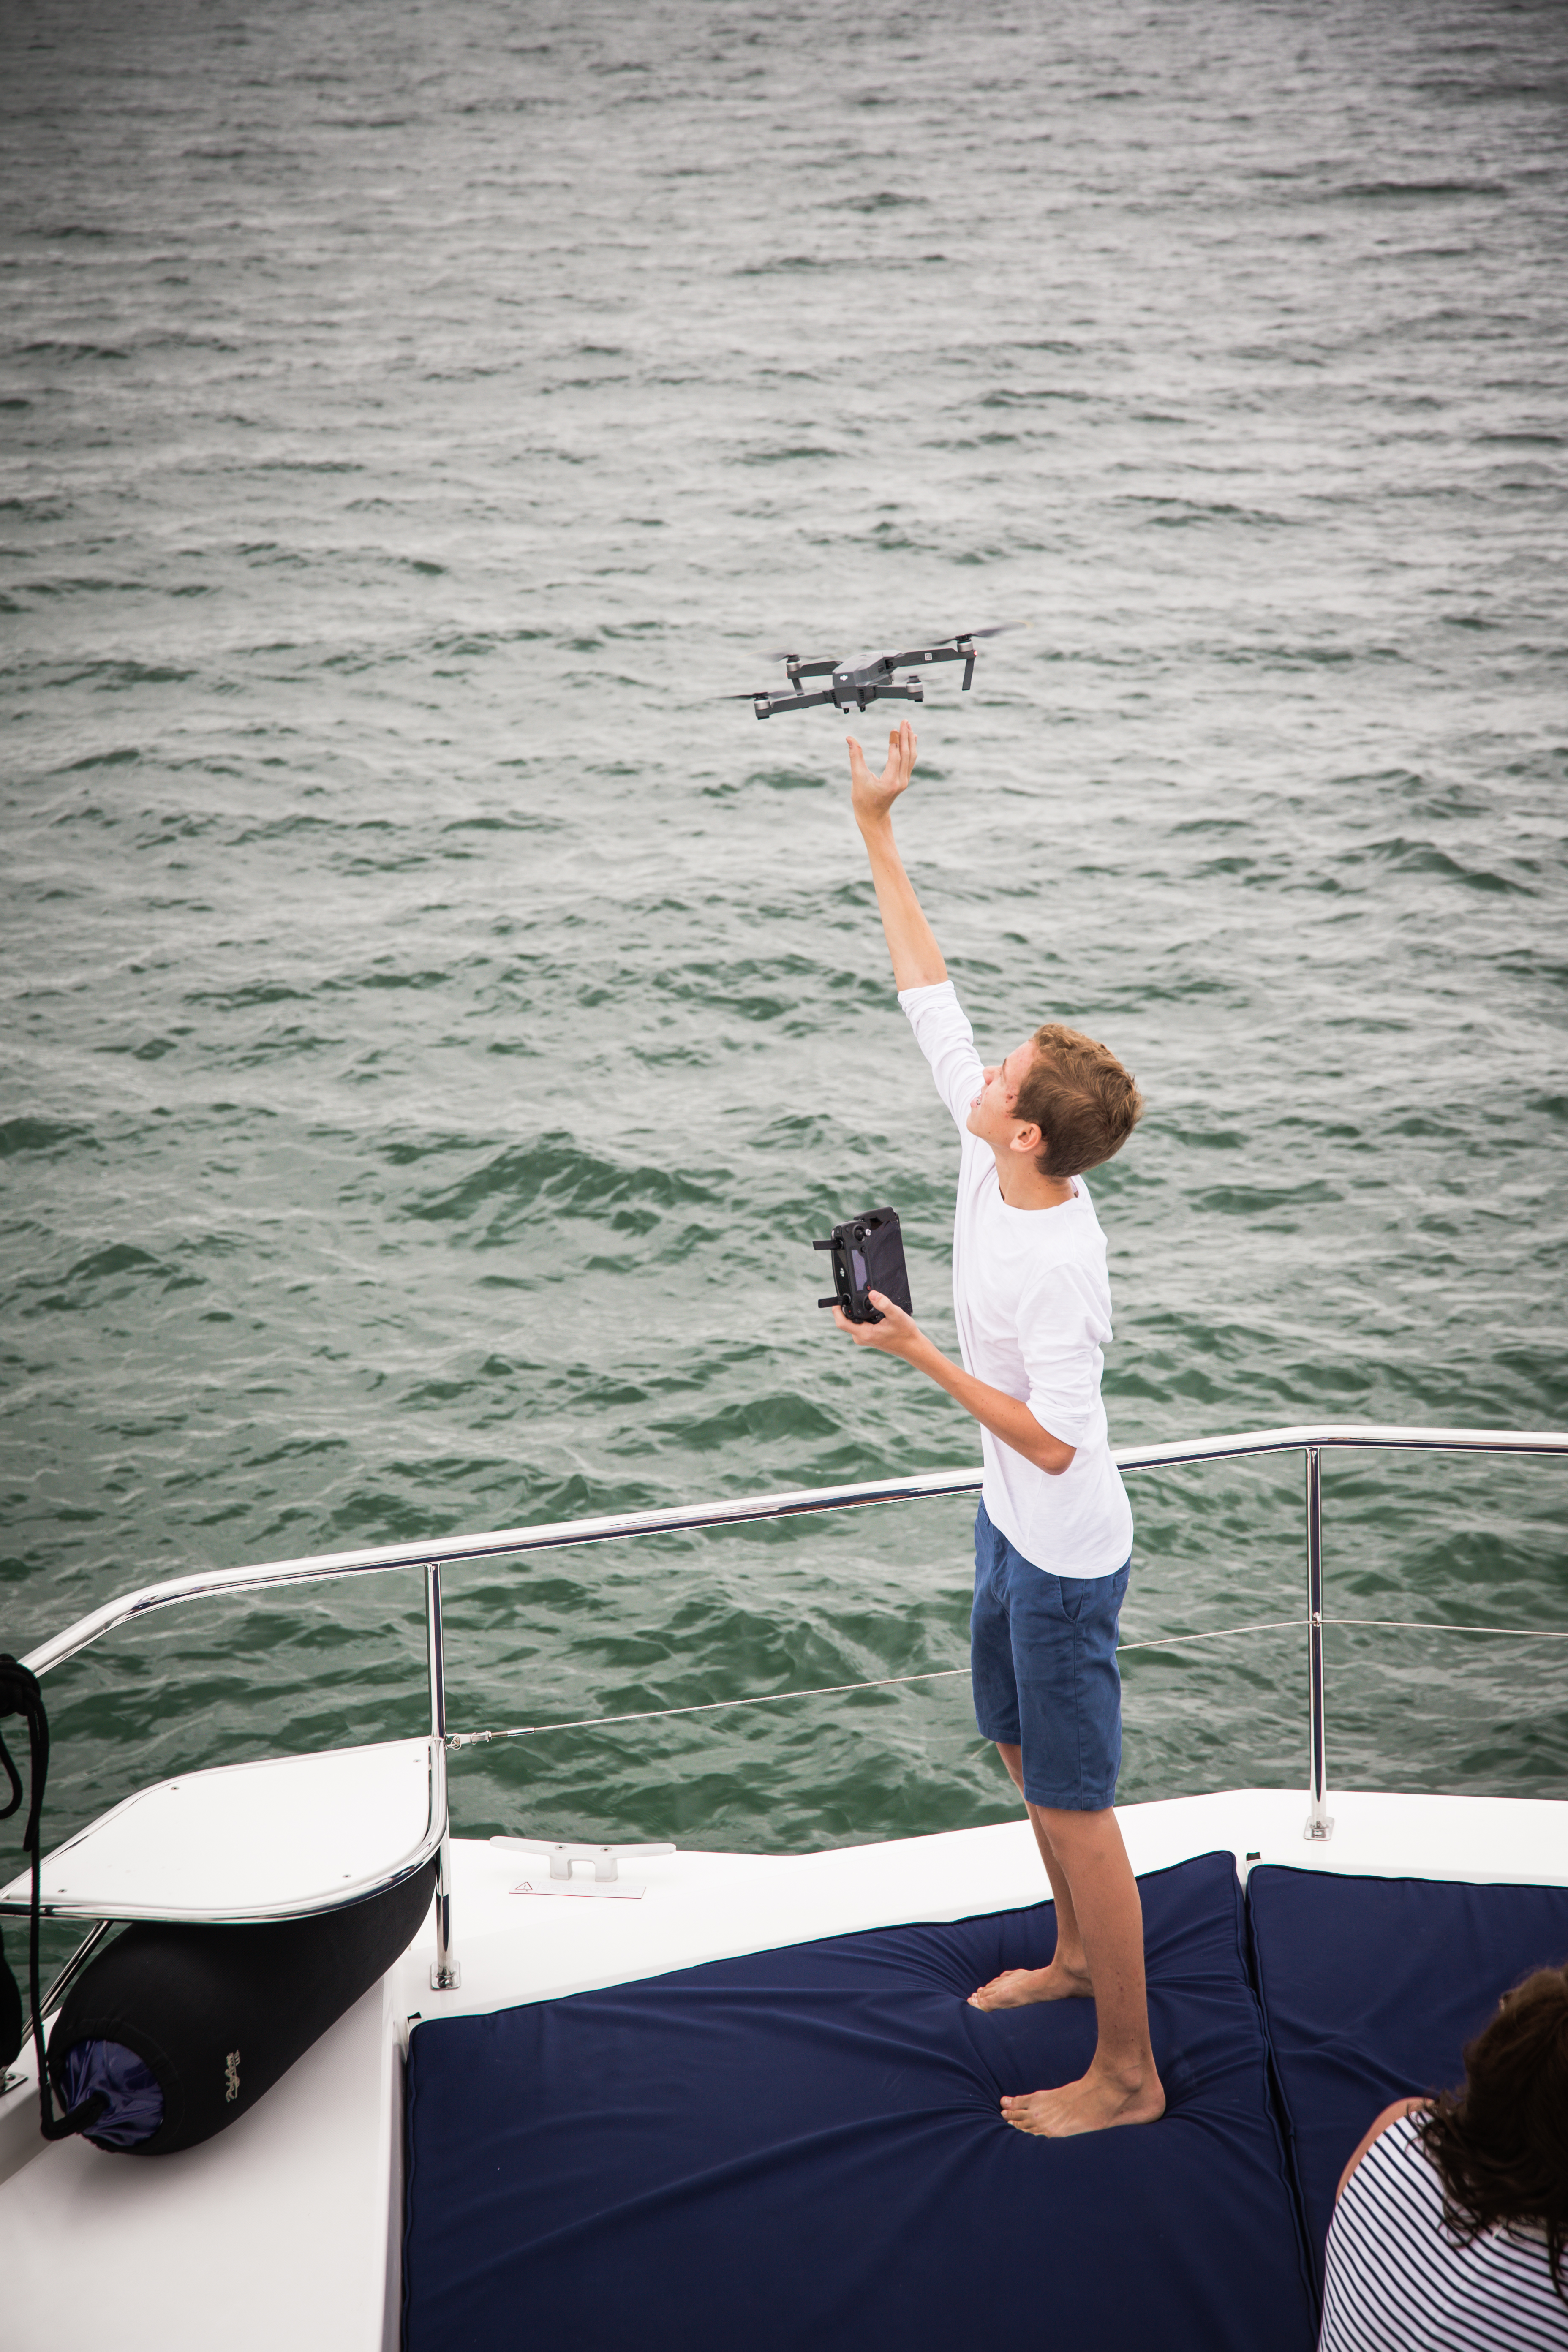 Setting The Drone